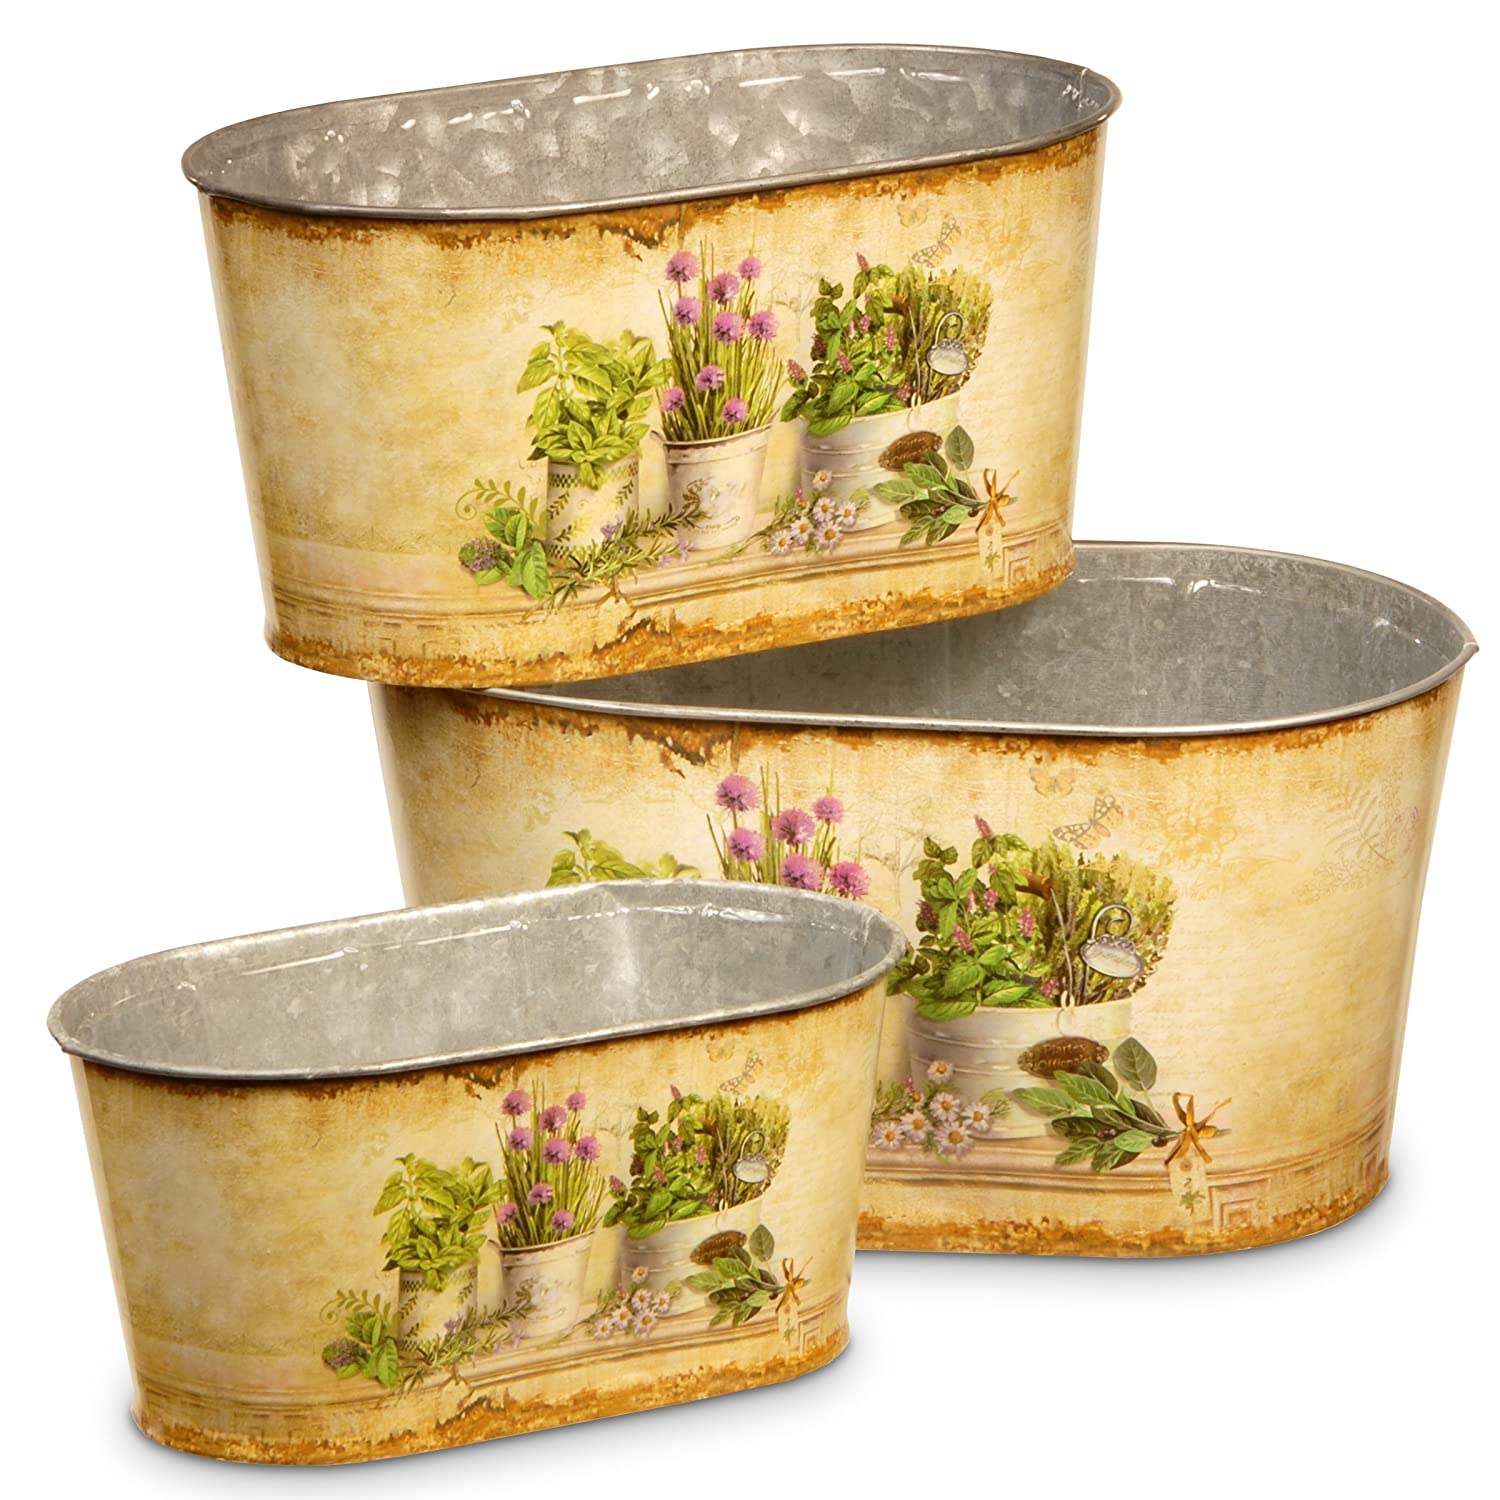 National Tree Set of 3 Assorted Oblong Shaped Painted Tin Pots RAS-HJRS15070